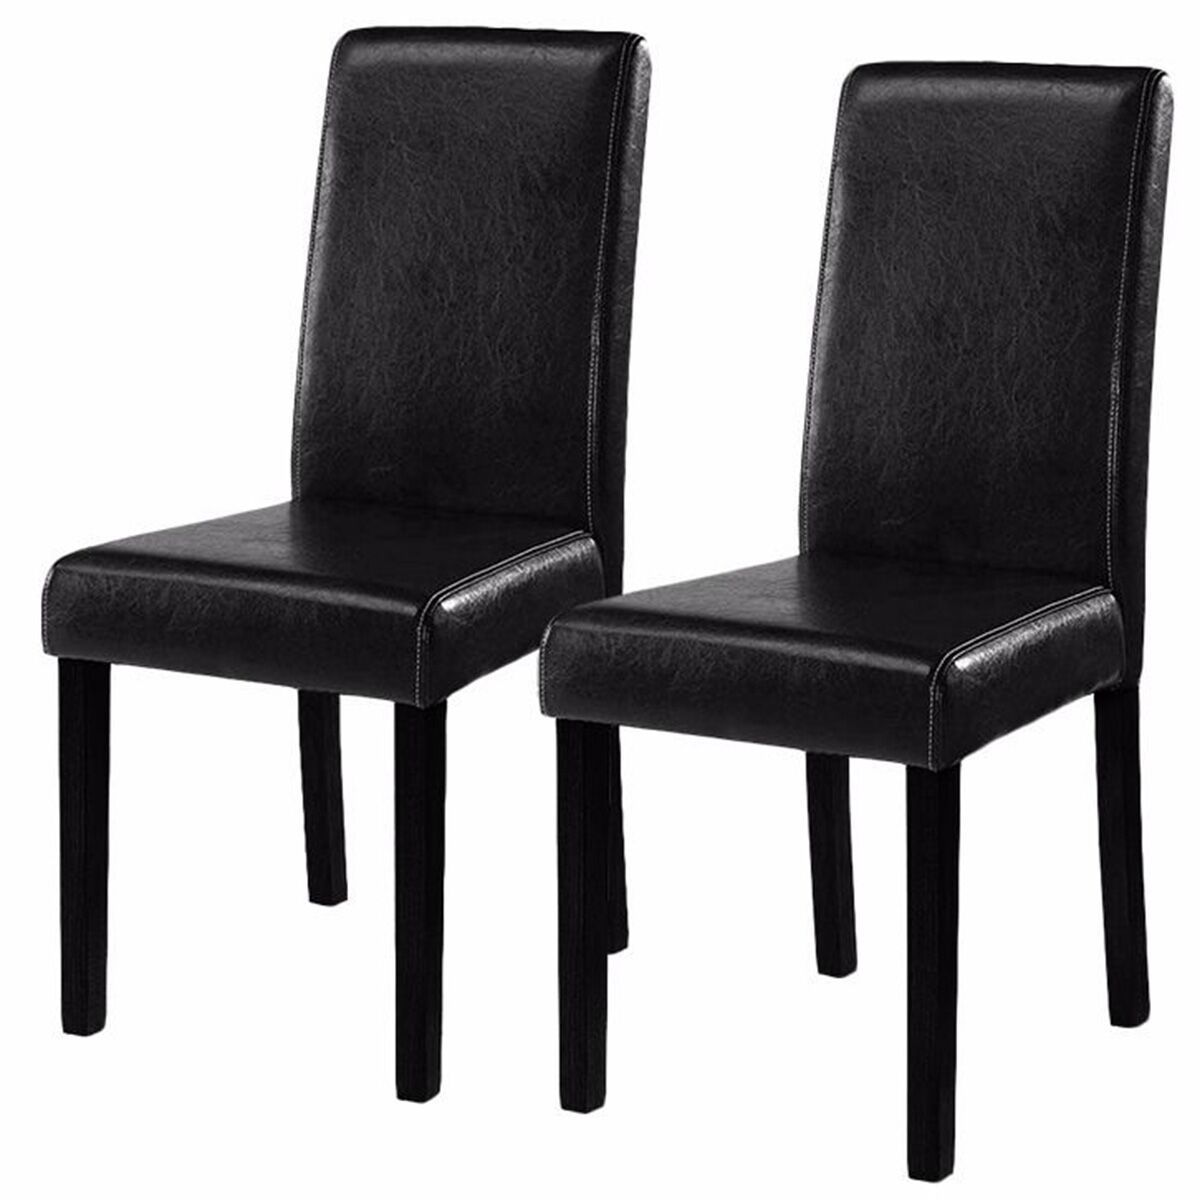 costway set of 2 black elegant design leather dining chairs home room